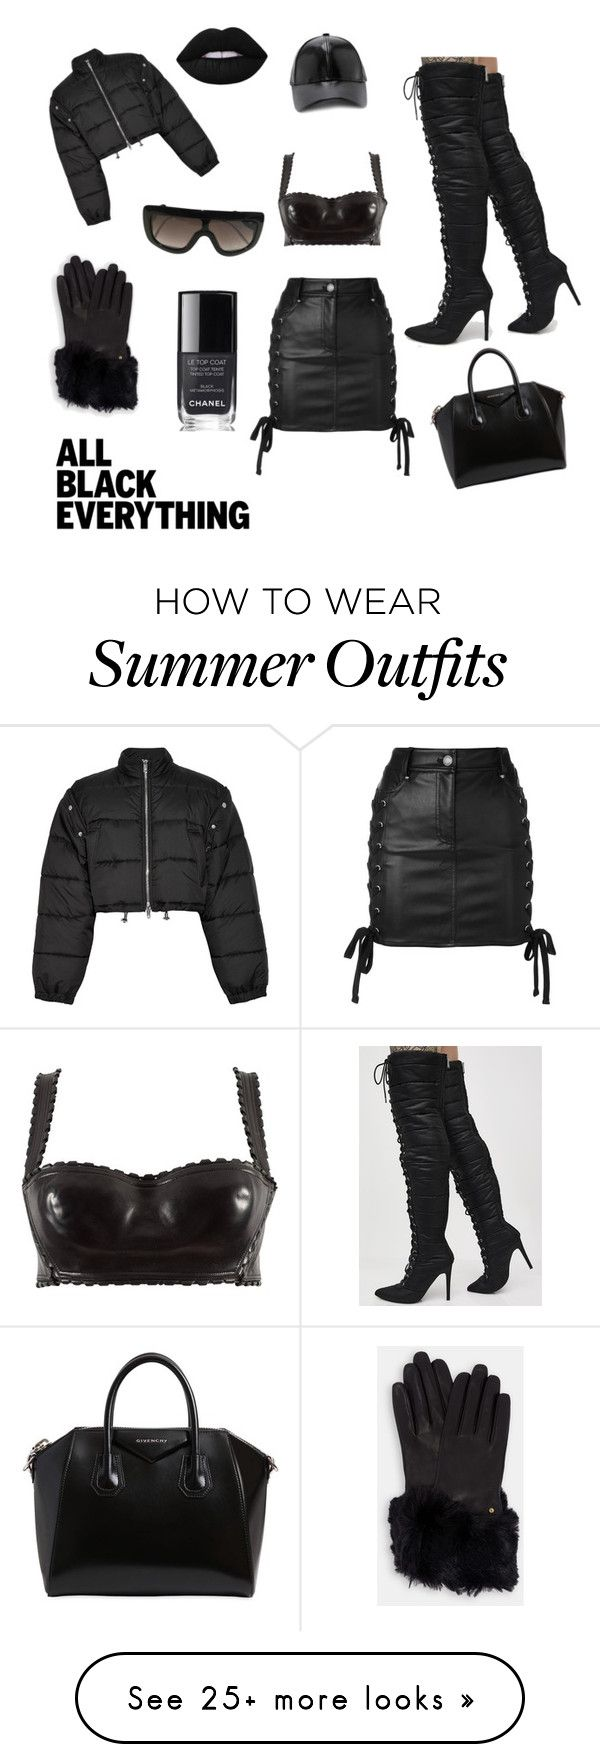 """""""Smooth Criminal """" by kingsosan on Polyvore featuring Cape Robbin, Alaïa, 3.1 Phillip Lim, CÉLINE, Forever 21, Ted Baker, Givenchy, Versus, Chanel and allblackoutfit"""